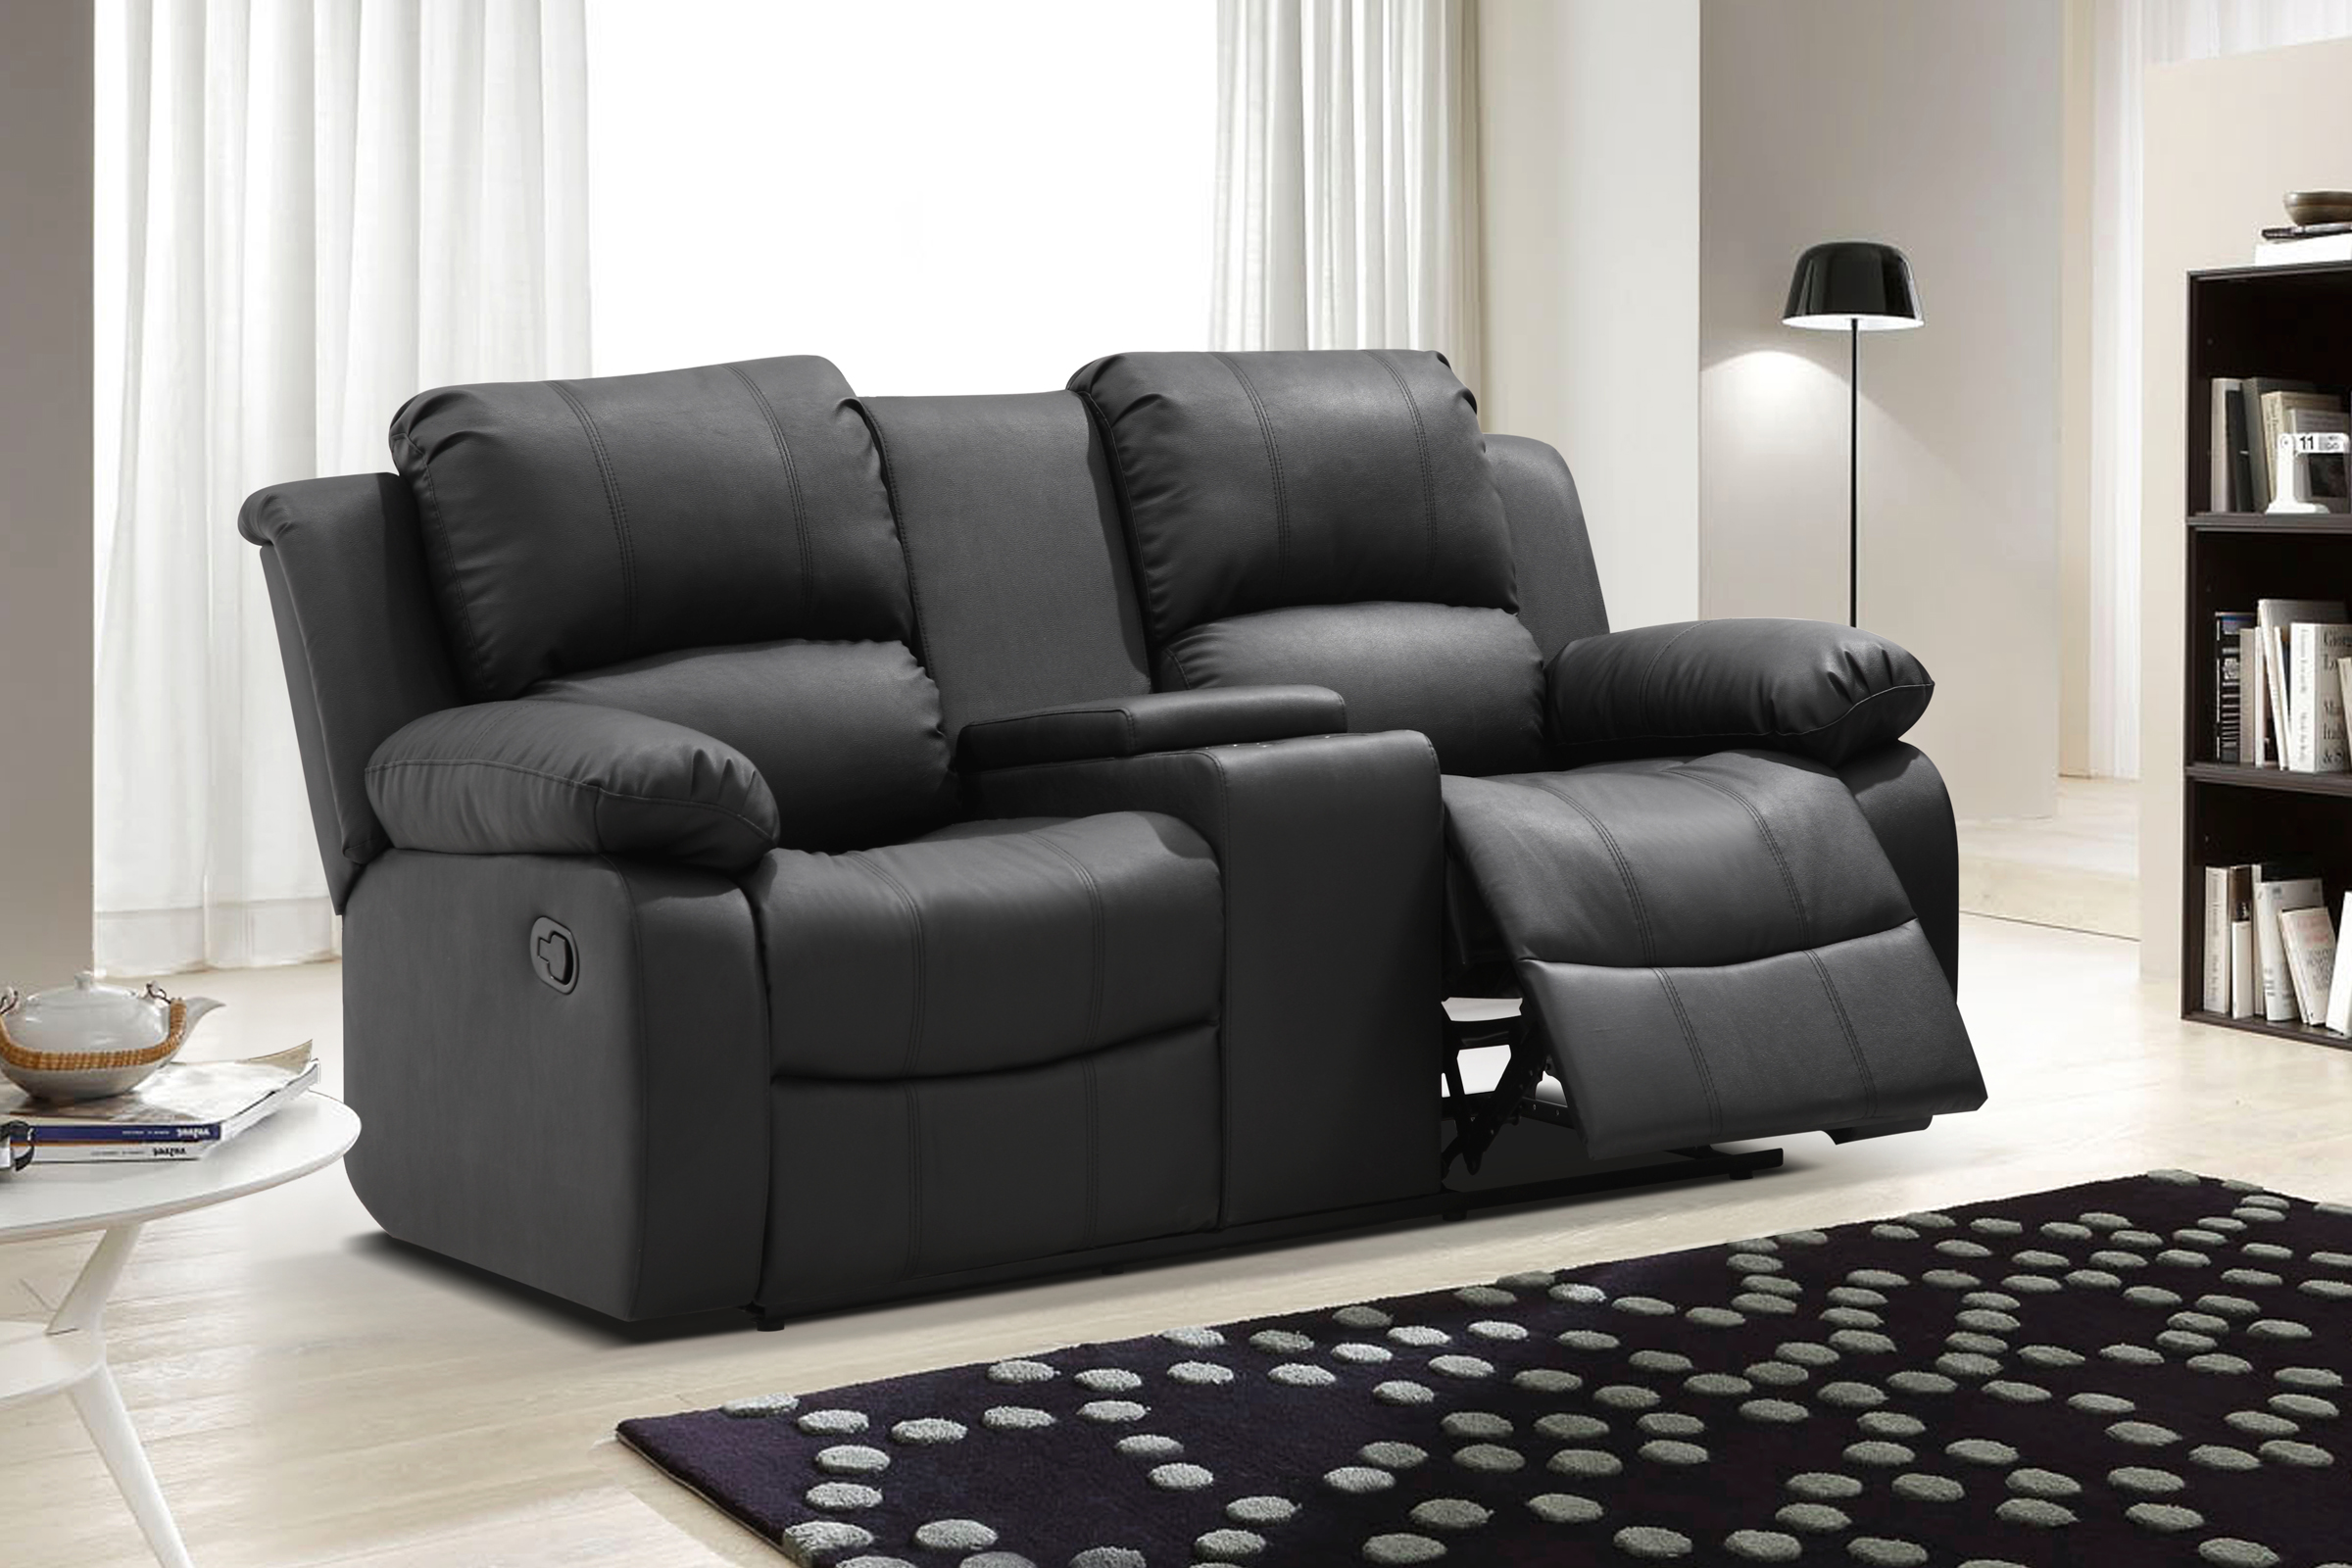 Generic Zoey Bonded Leather Reclining Loveseat with Center Console Black  sc 1 st  Walmart & Generic Zoey Bonded Leather Reclining Loveseat with Center ... islam-shia.org